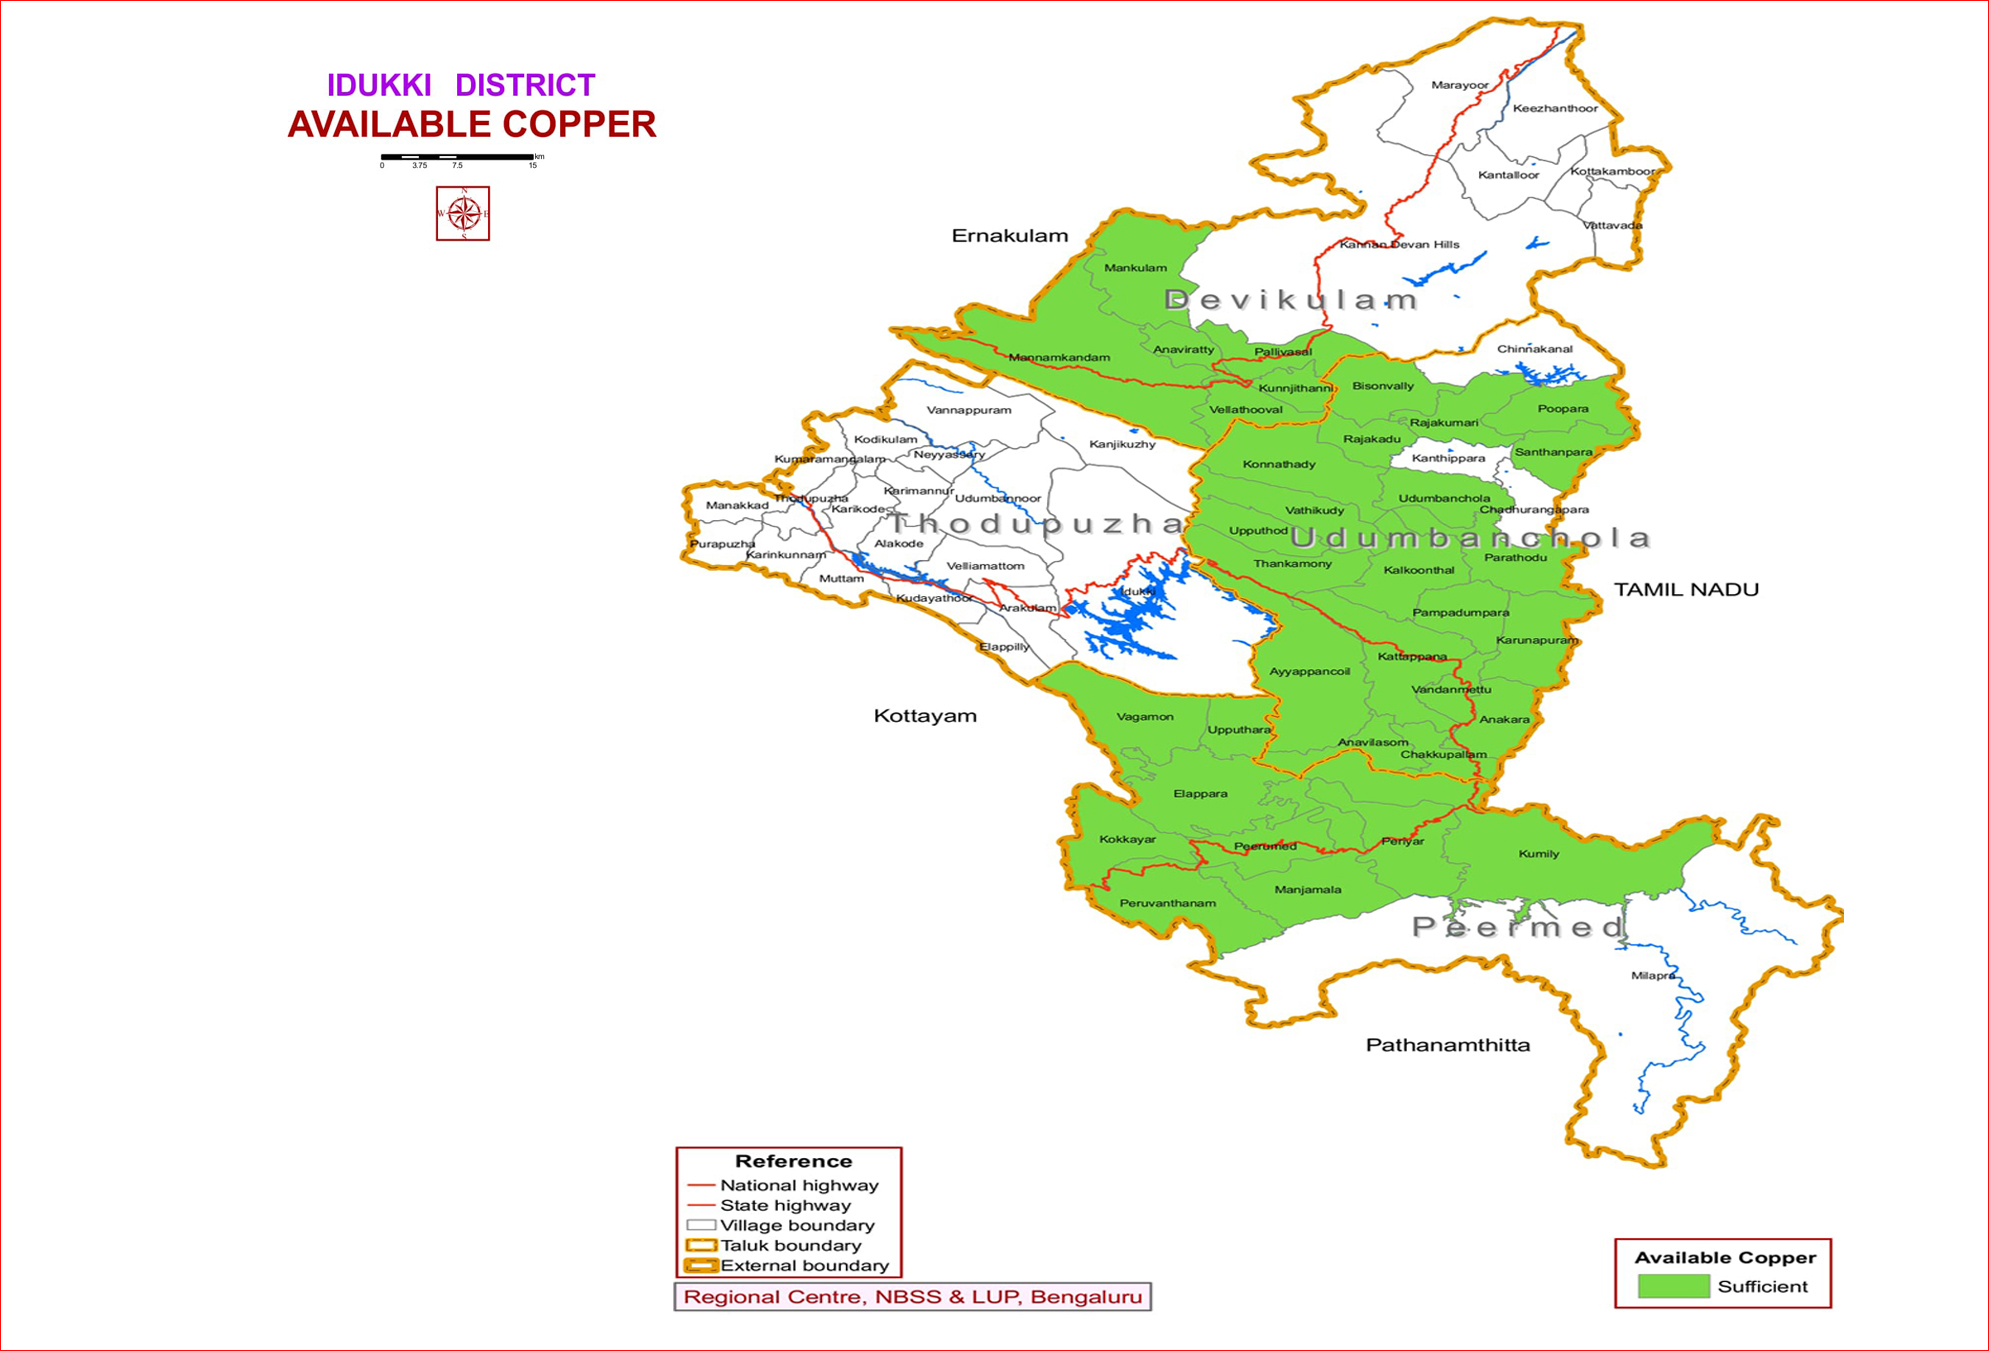 Available Copper, Idukki district